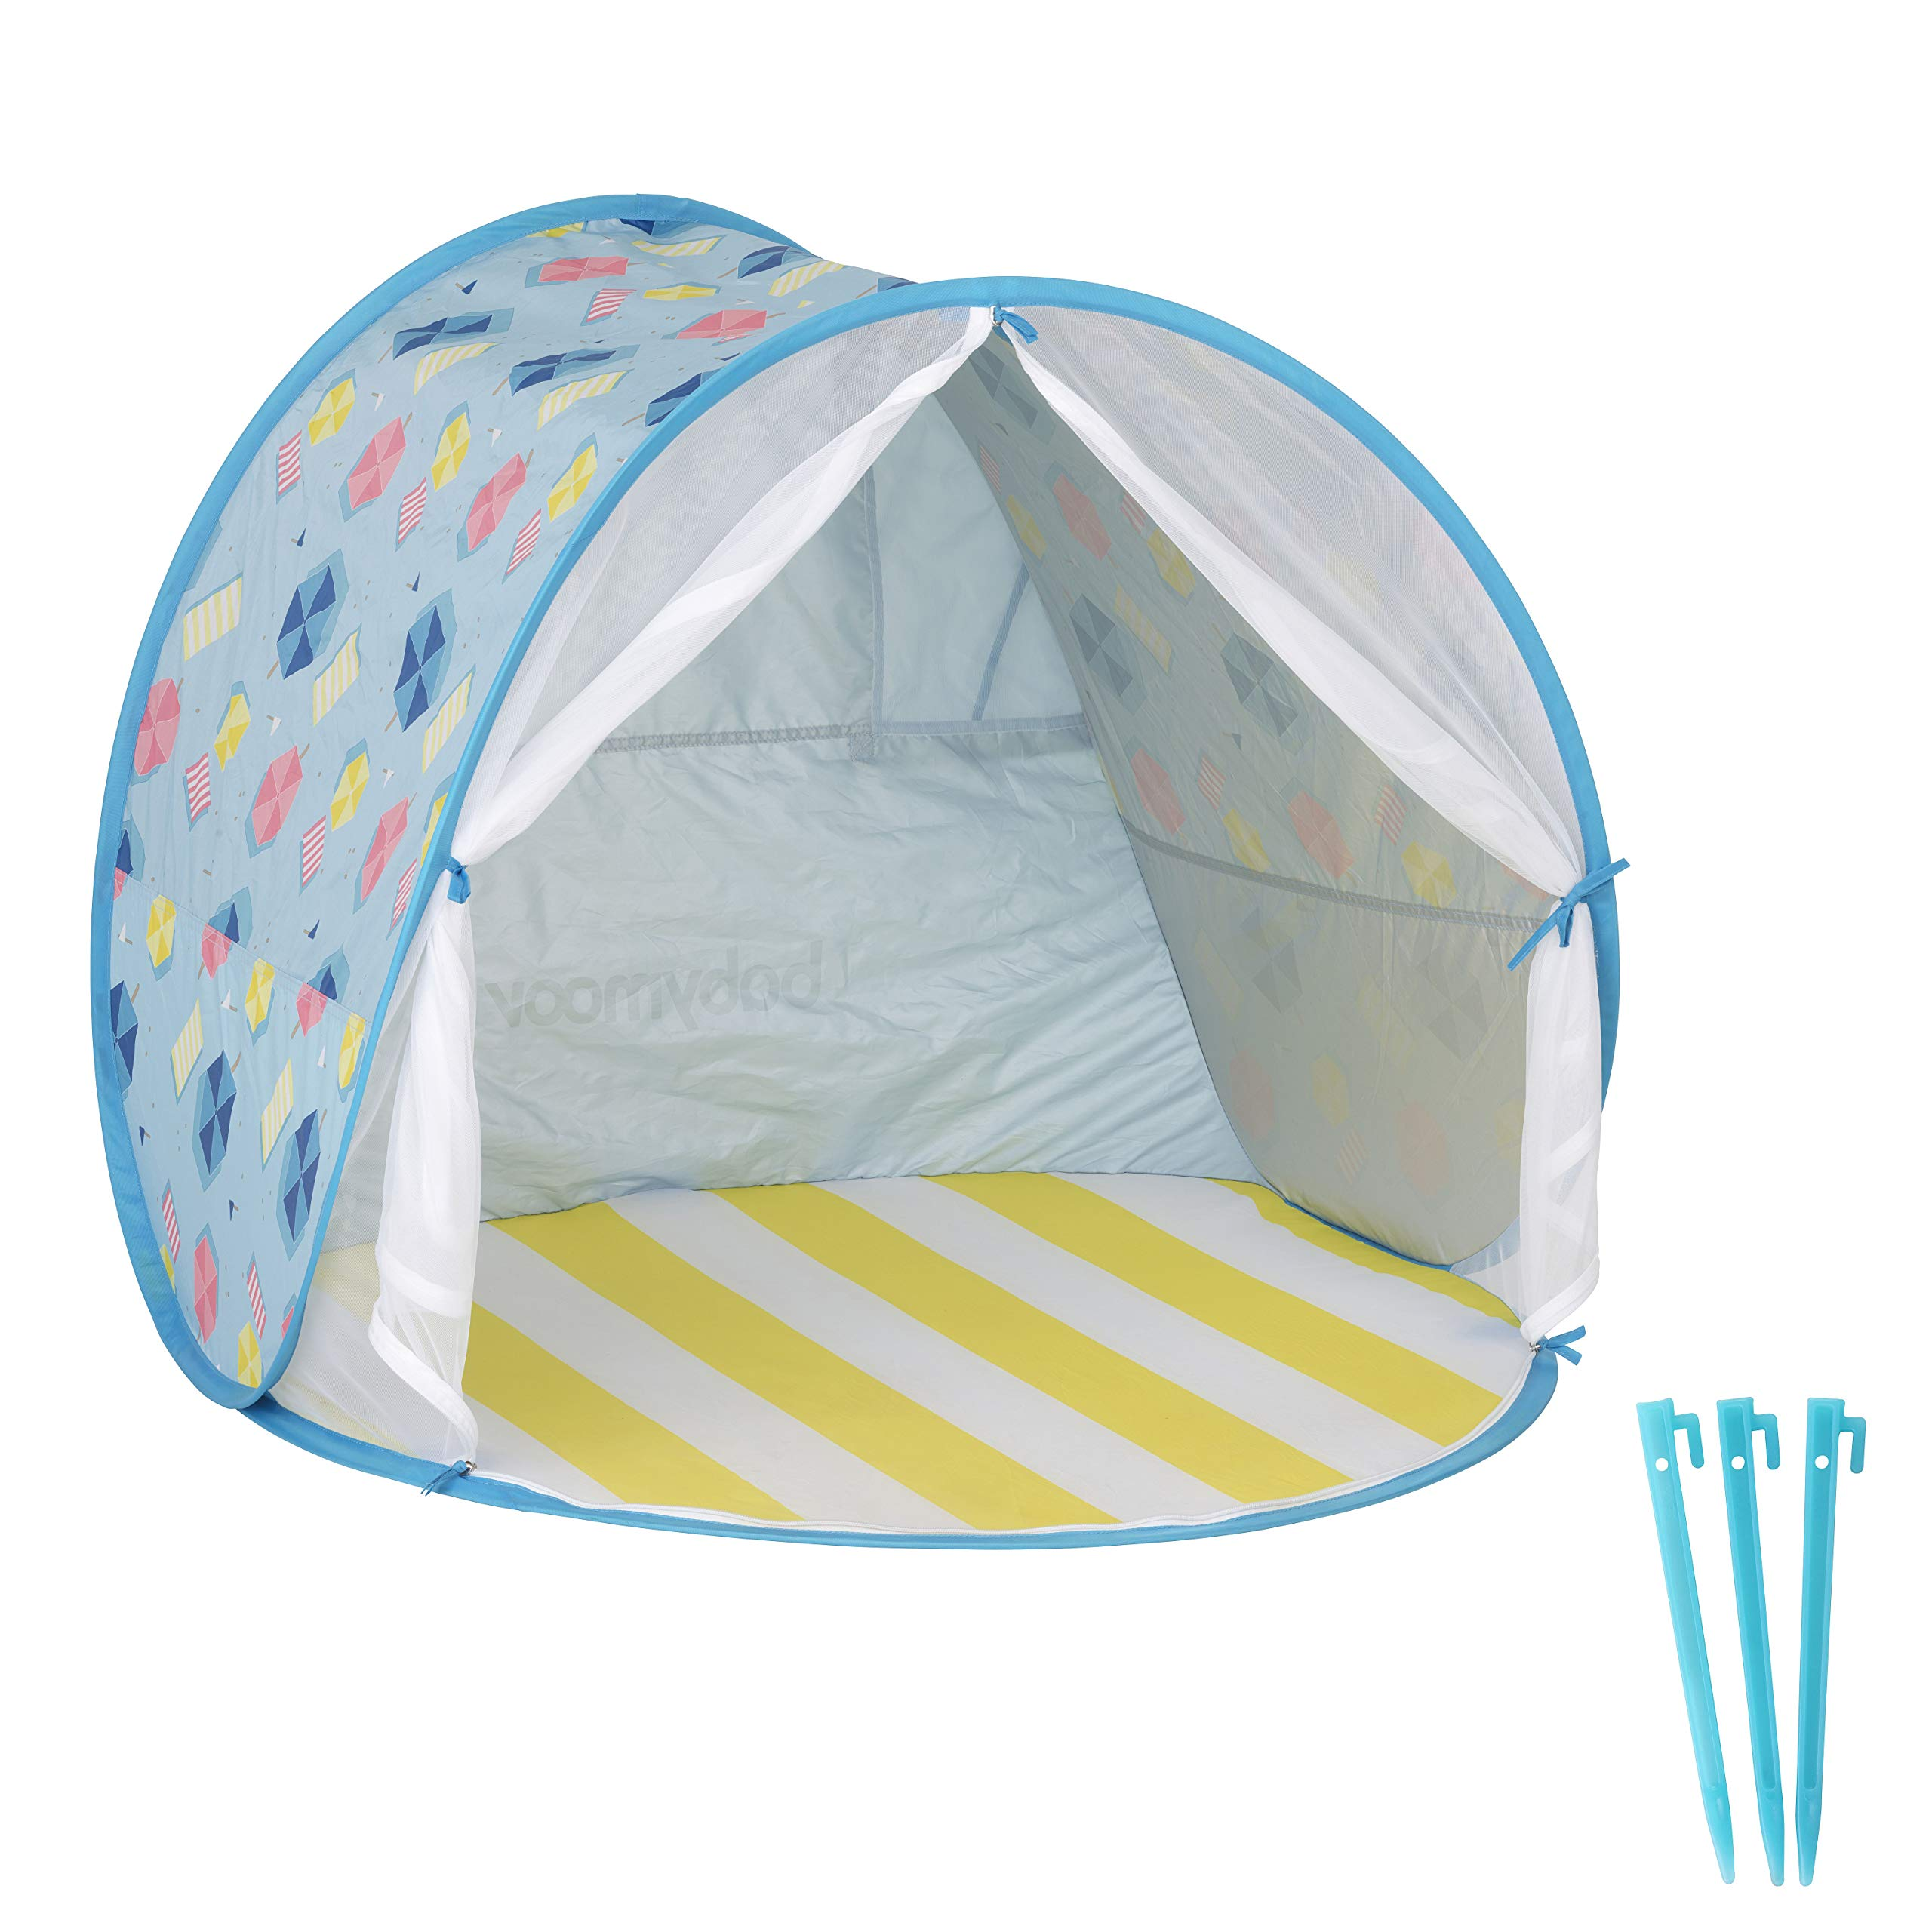 Babymoov Anti-UV Beach Tent UPF 50+ Sun Protection with Pop Up System for Easy Use and Travel